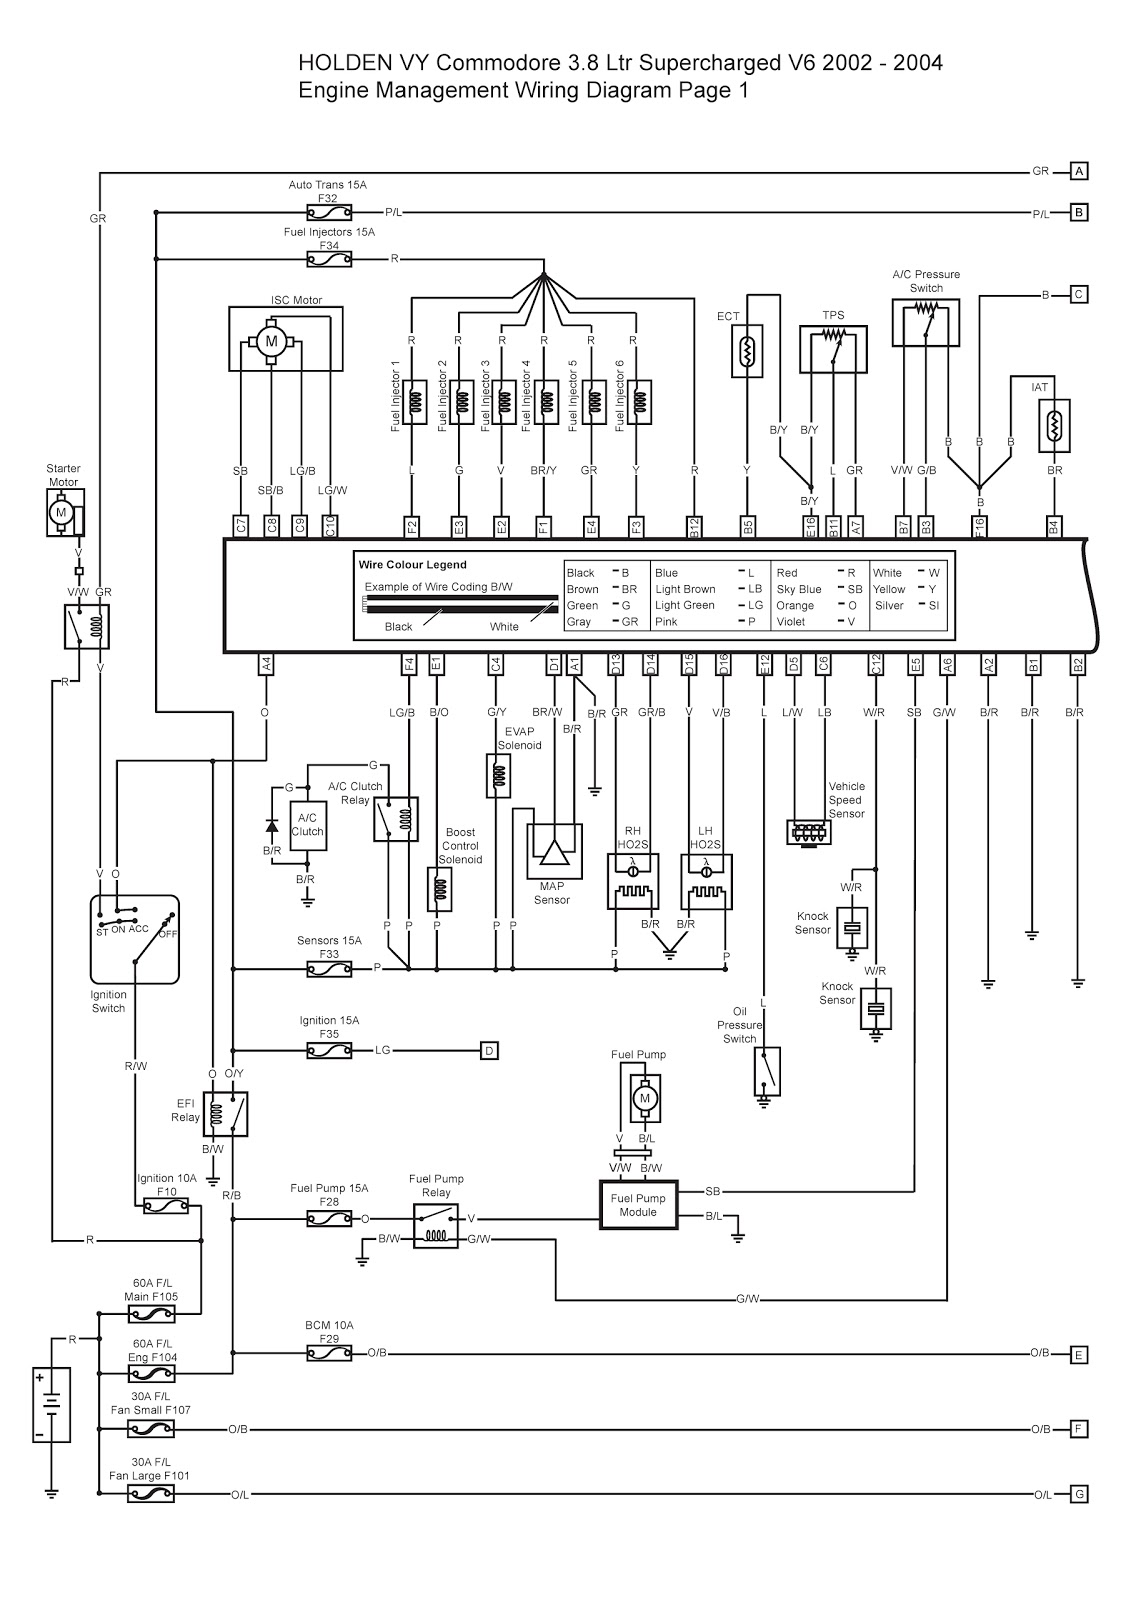 holden vy commodore ltr supercharged v engine 2002 2004 holden vy commodore 3 8 ltr supercharged v6 engine management wiring diagram 1